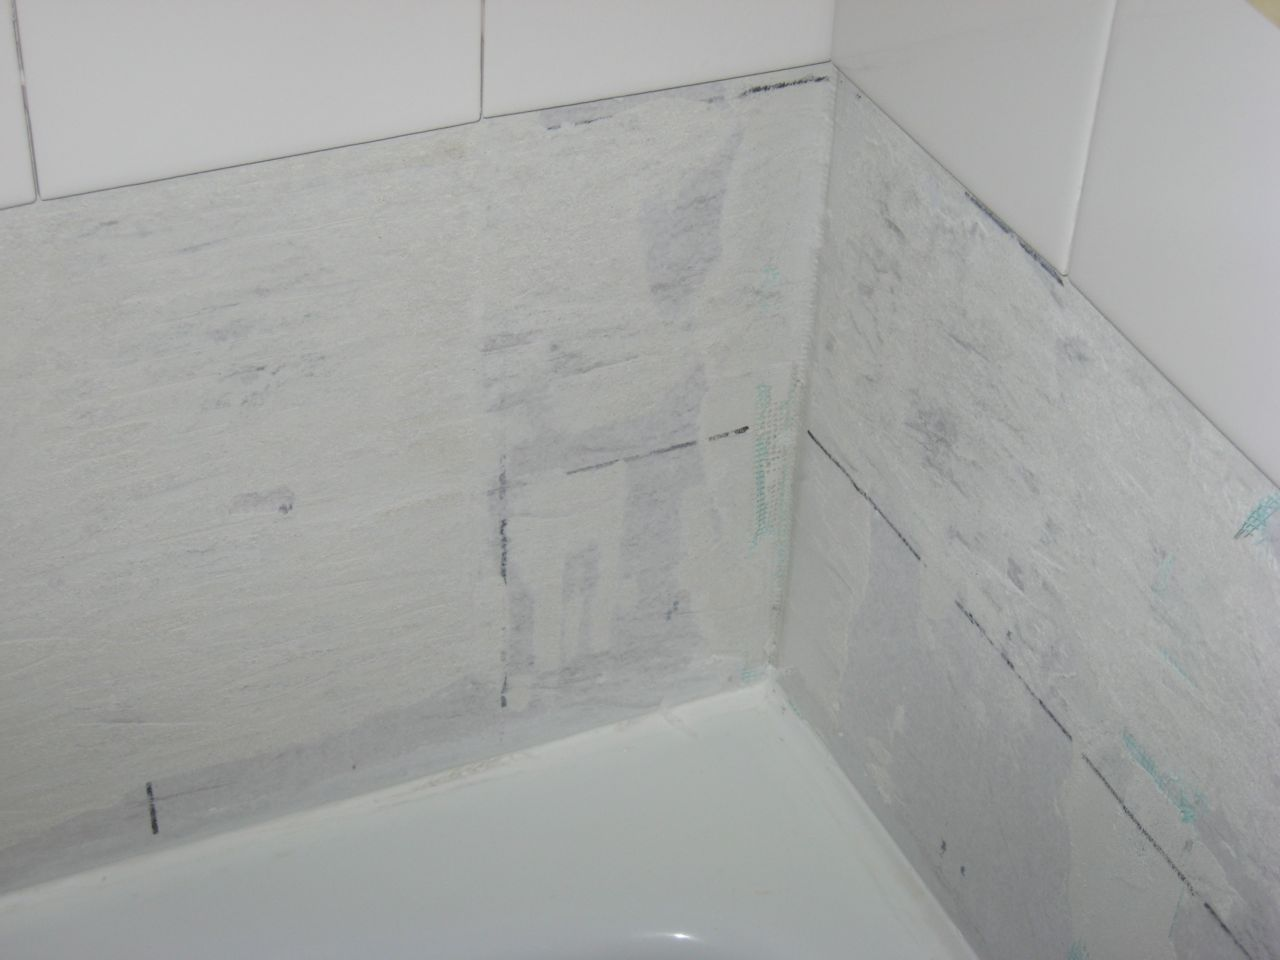 Gap Between Shower Tile Walls And Tub - General DIY Discussions ...